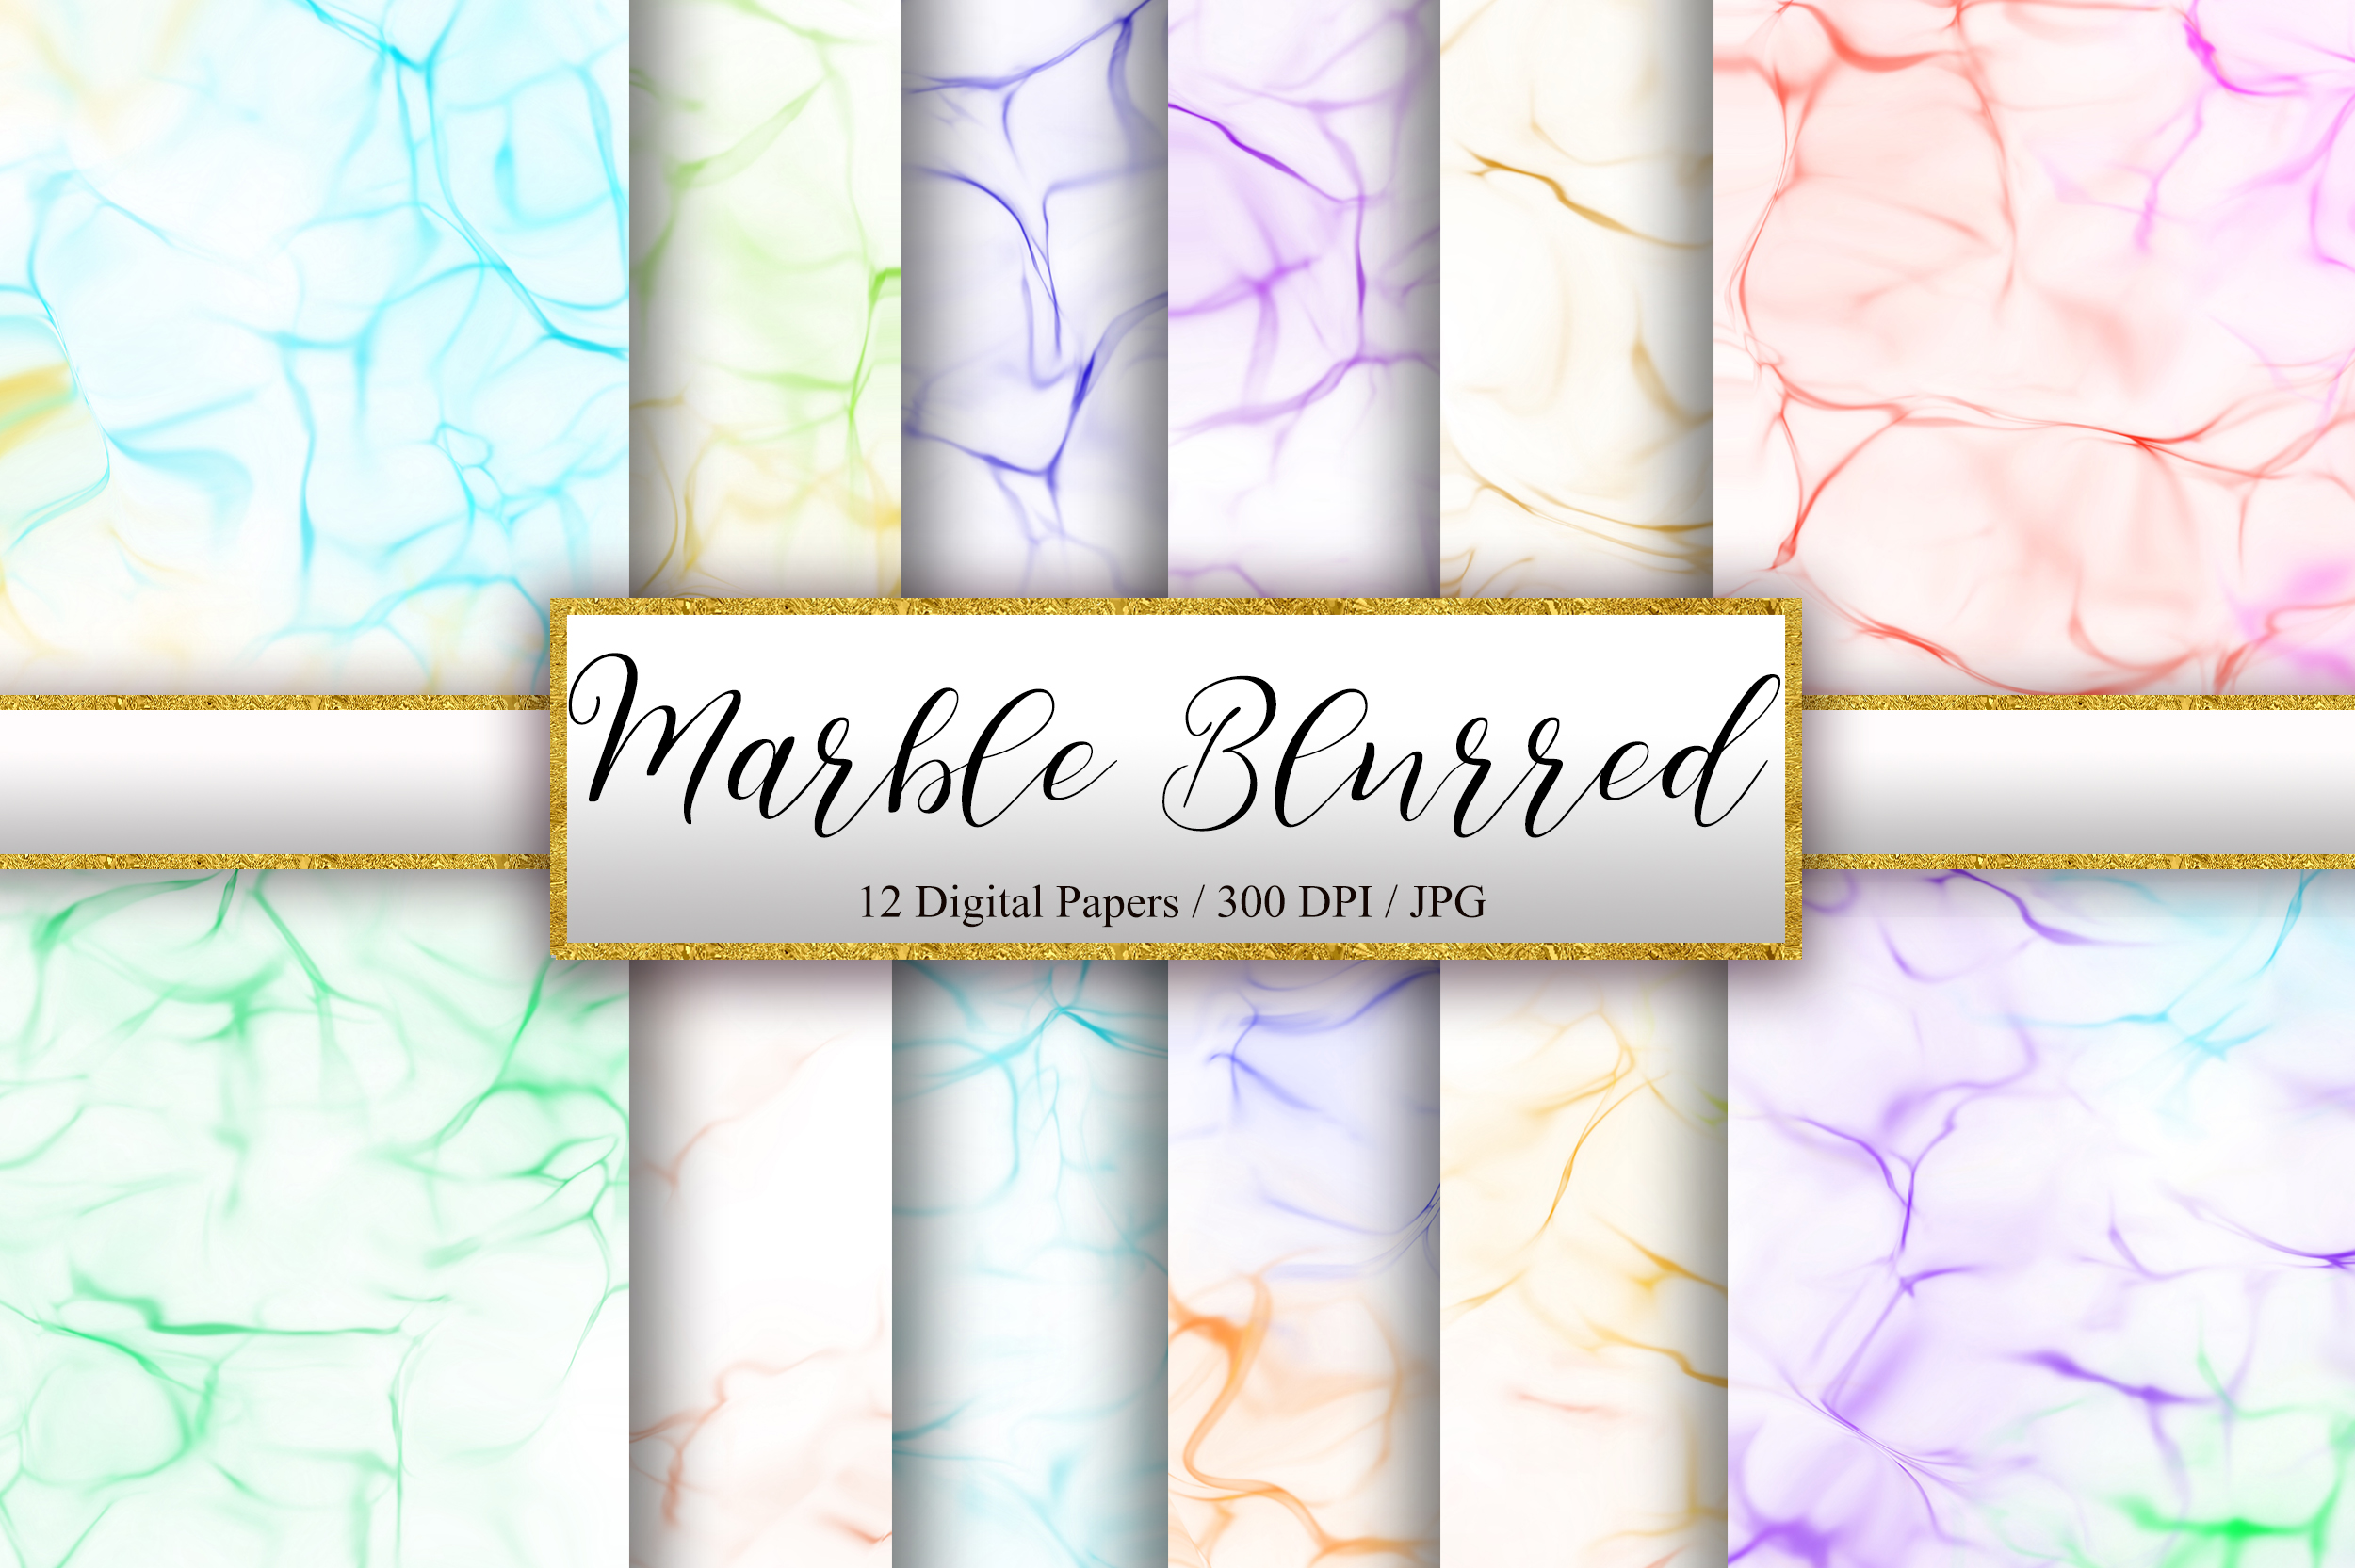 Marble Blurred Texture Background Graphic By Pinkpearly